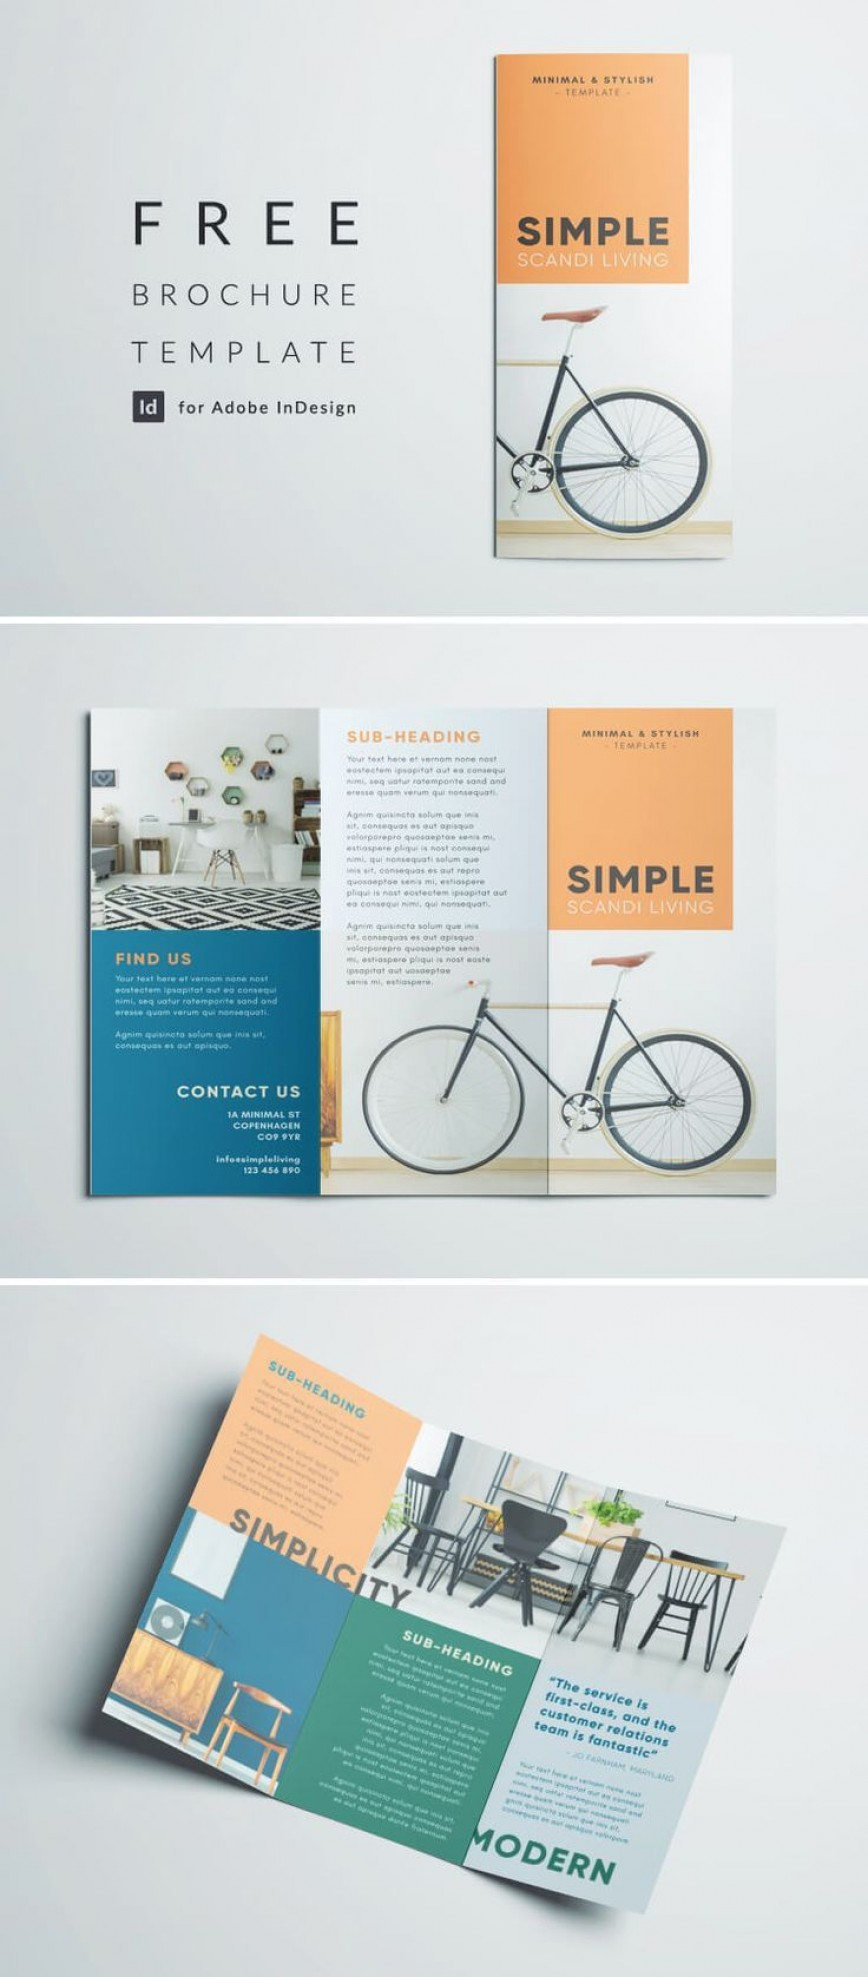 001 Unbelievable Indesign Tri Fold Brochure Template Image  Free Adobe 11x17868